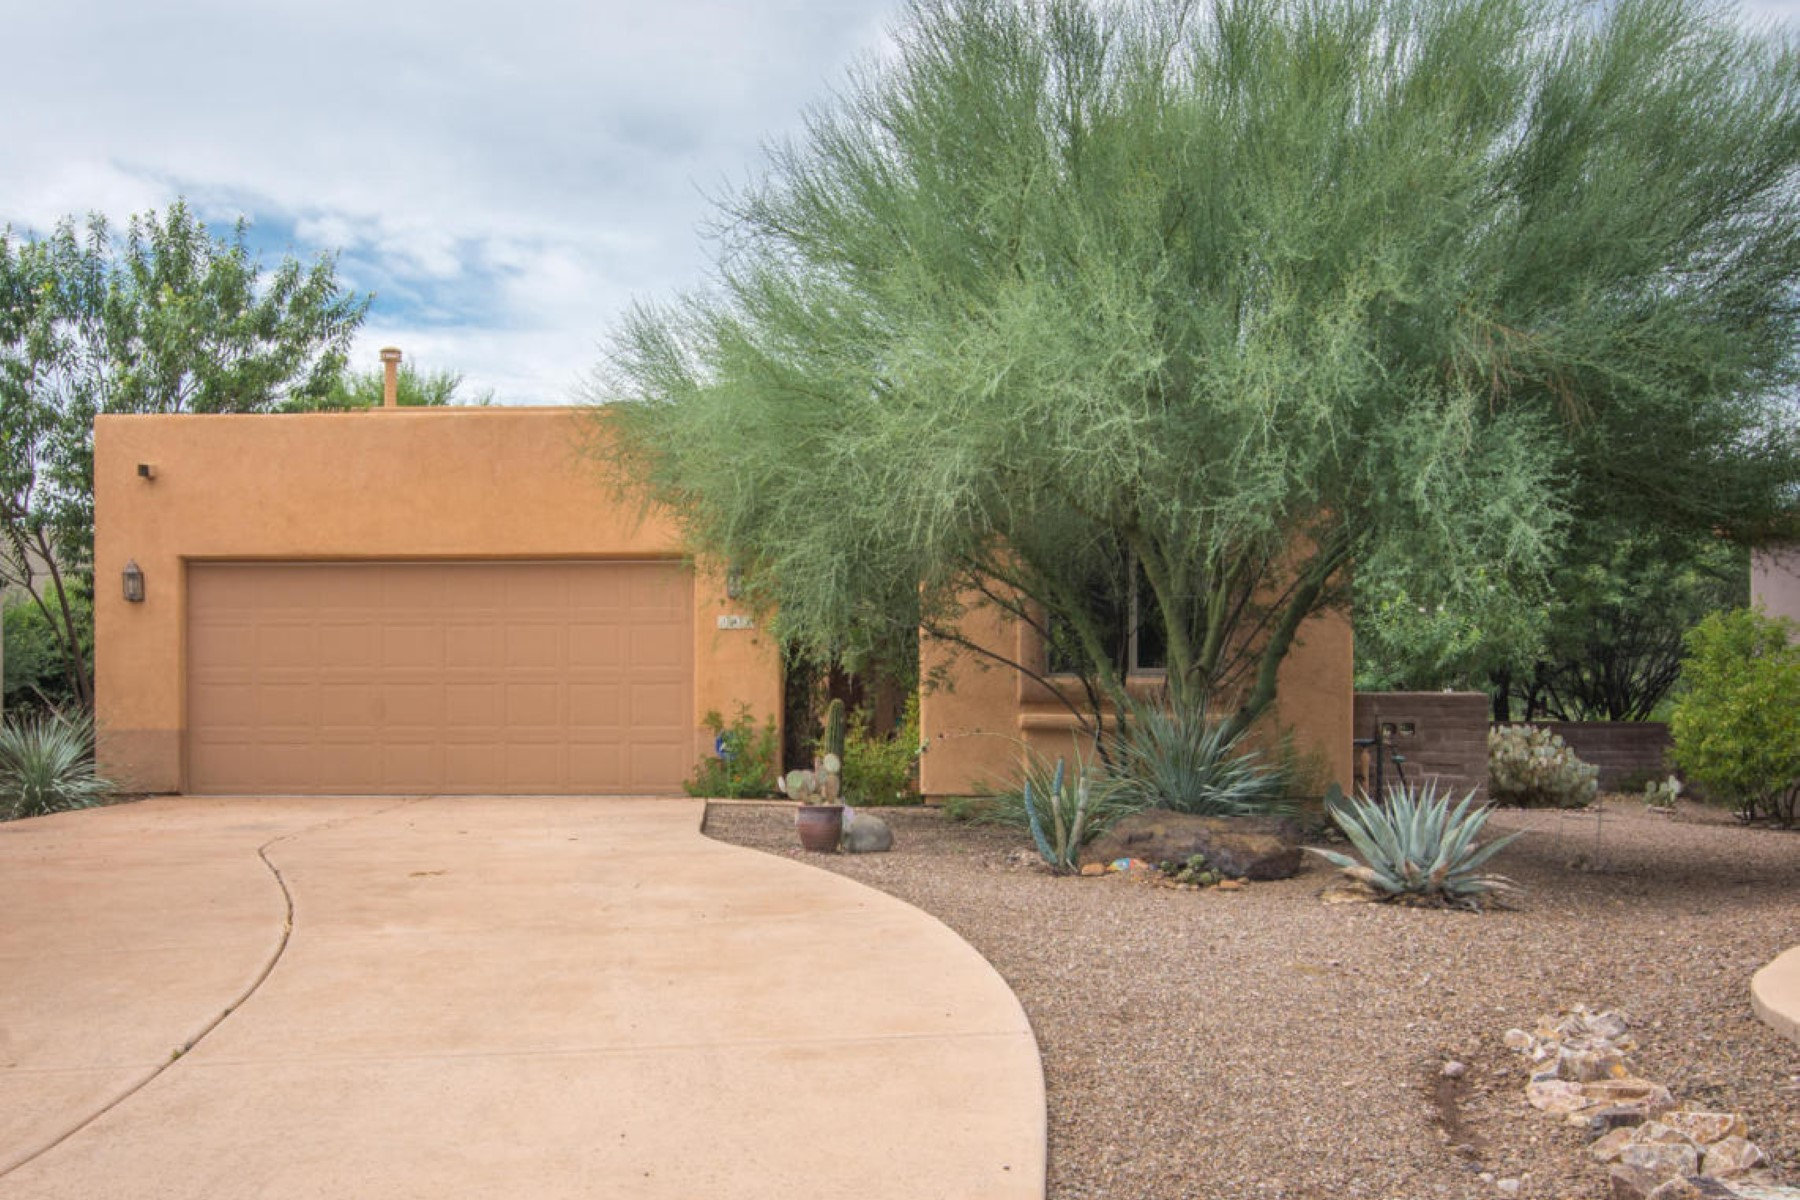 Single Family Home for Sale at On a cul de sac, this is one of the largest homes in the Trails Head Subdivision 116 Powell Ct Tubac, Arizona, 85646 United States